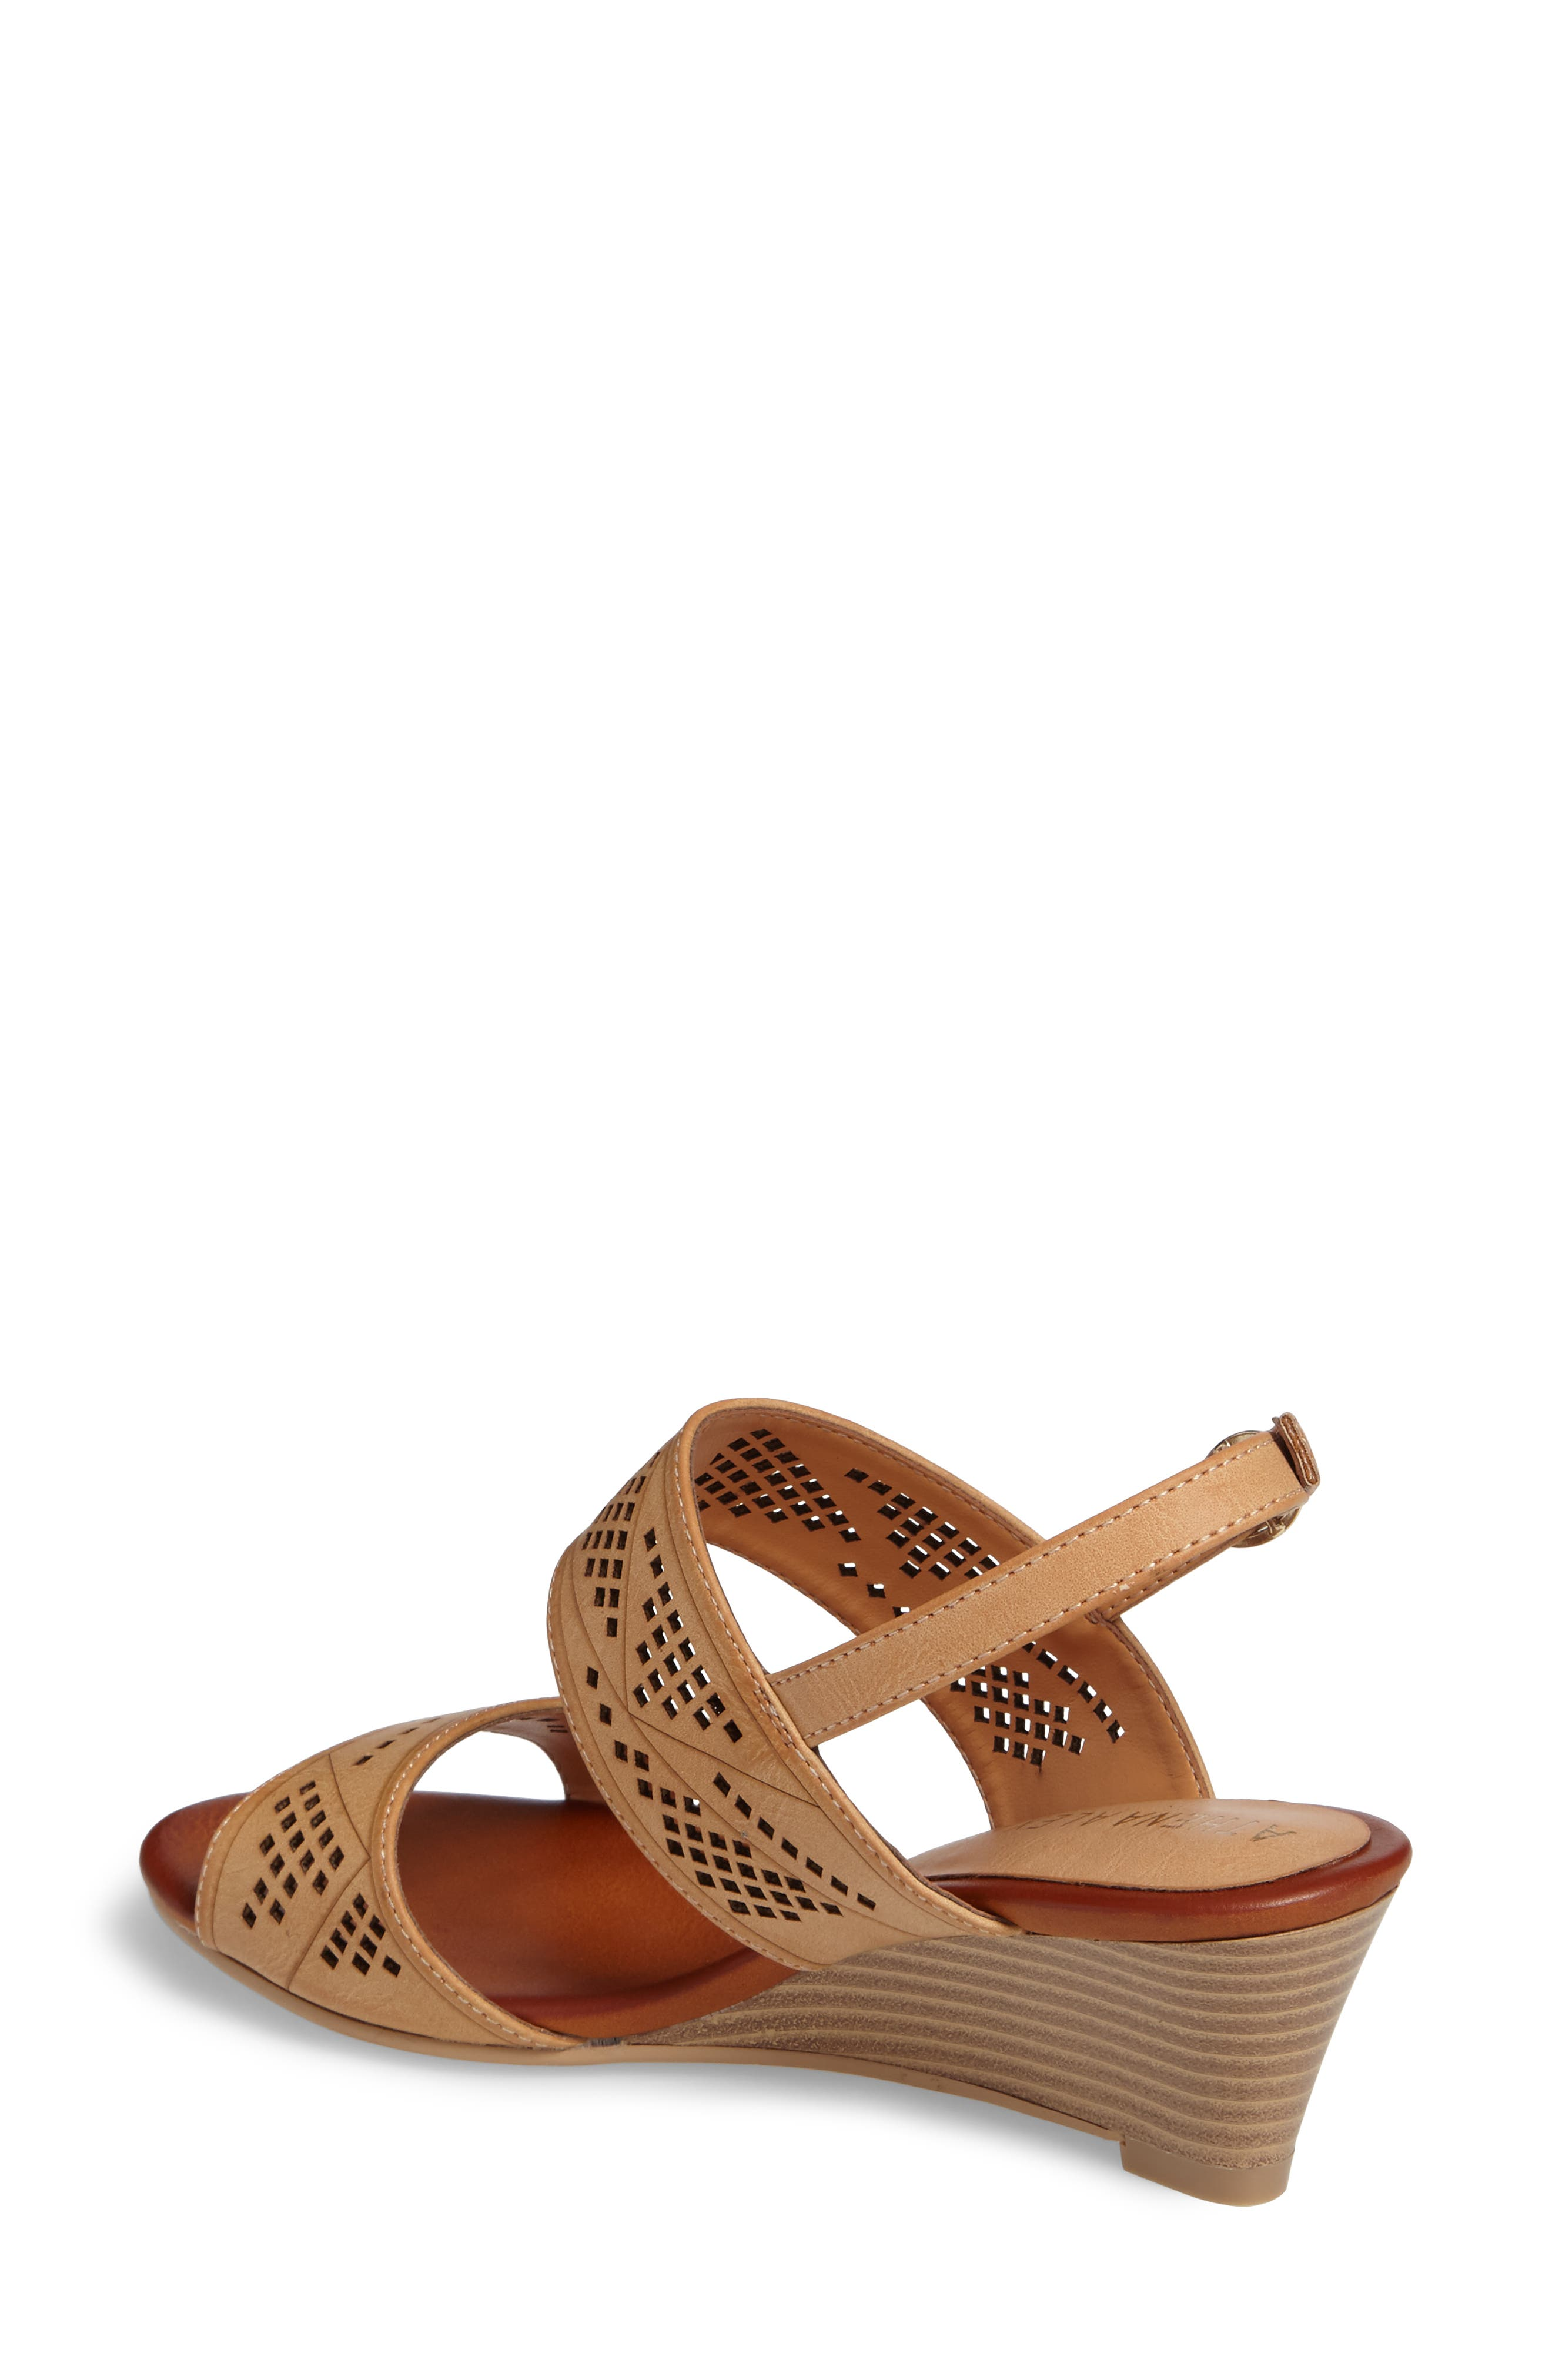 Sparce Perforated Wedge Sandal,                             Alternate thumbnail 4, color,